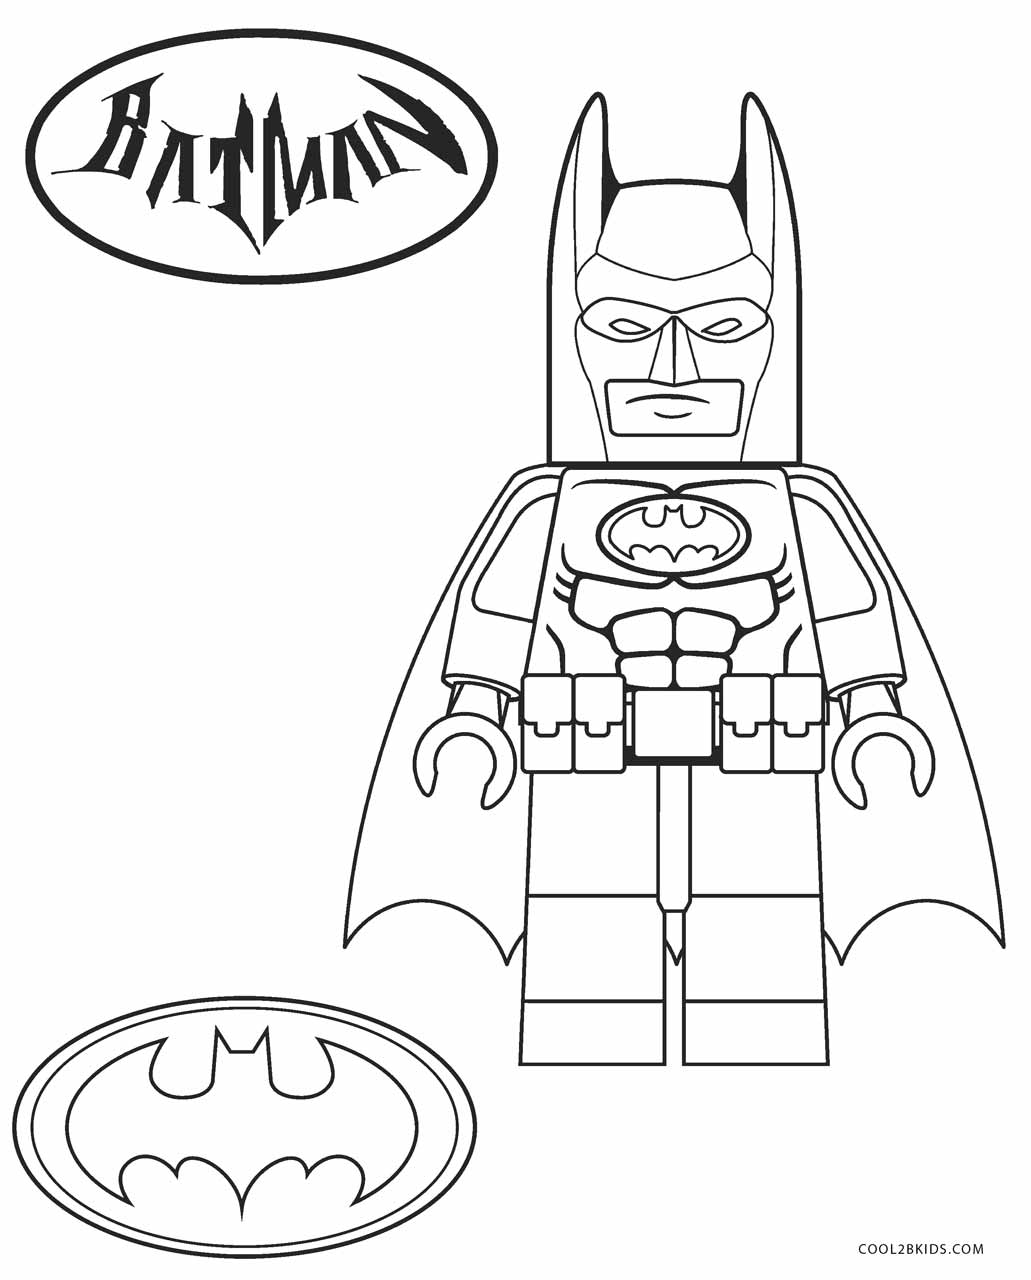 lego coloring sheets free coloring pages printable pictures to color kids sheets lego coloring 1 1